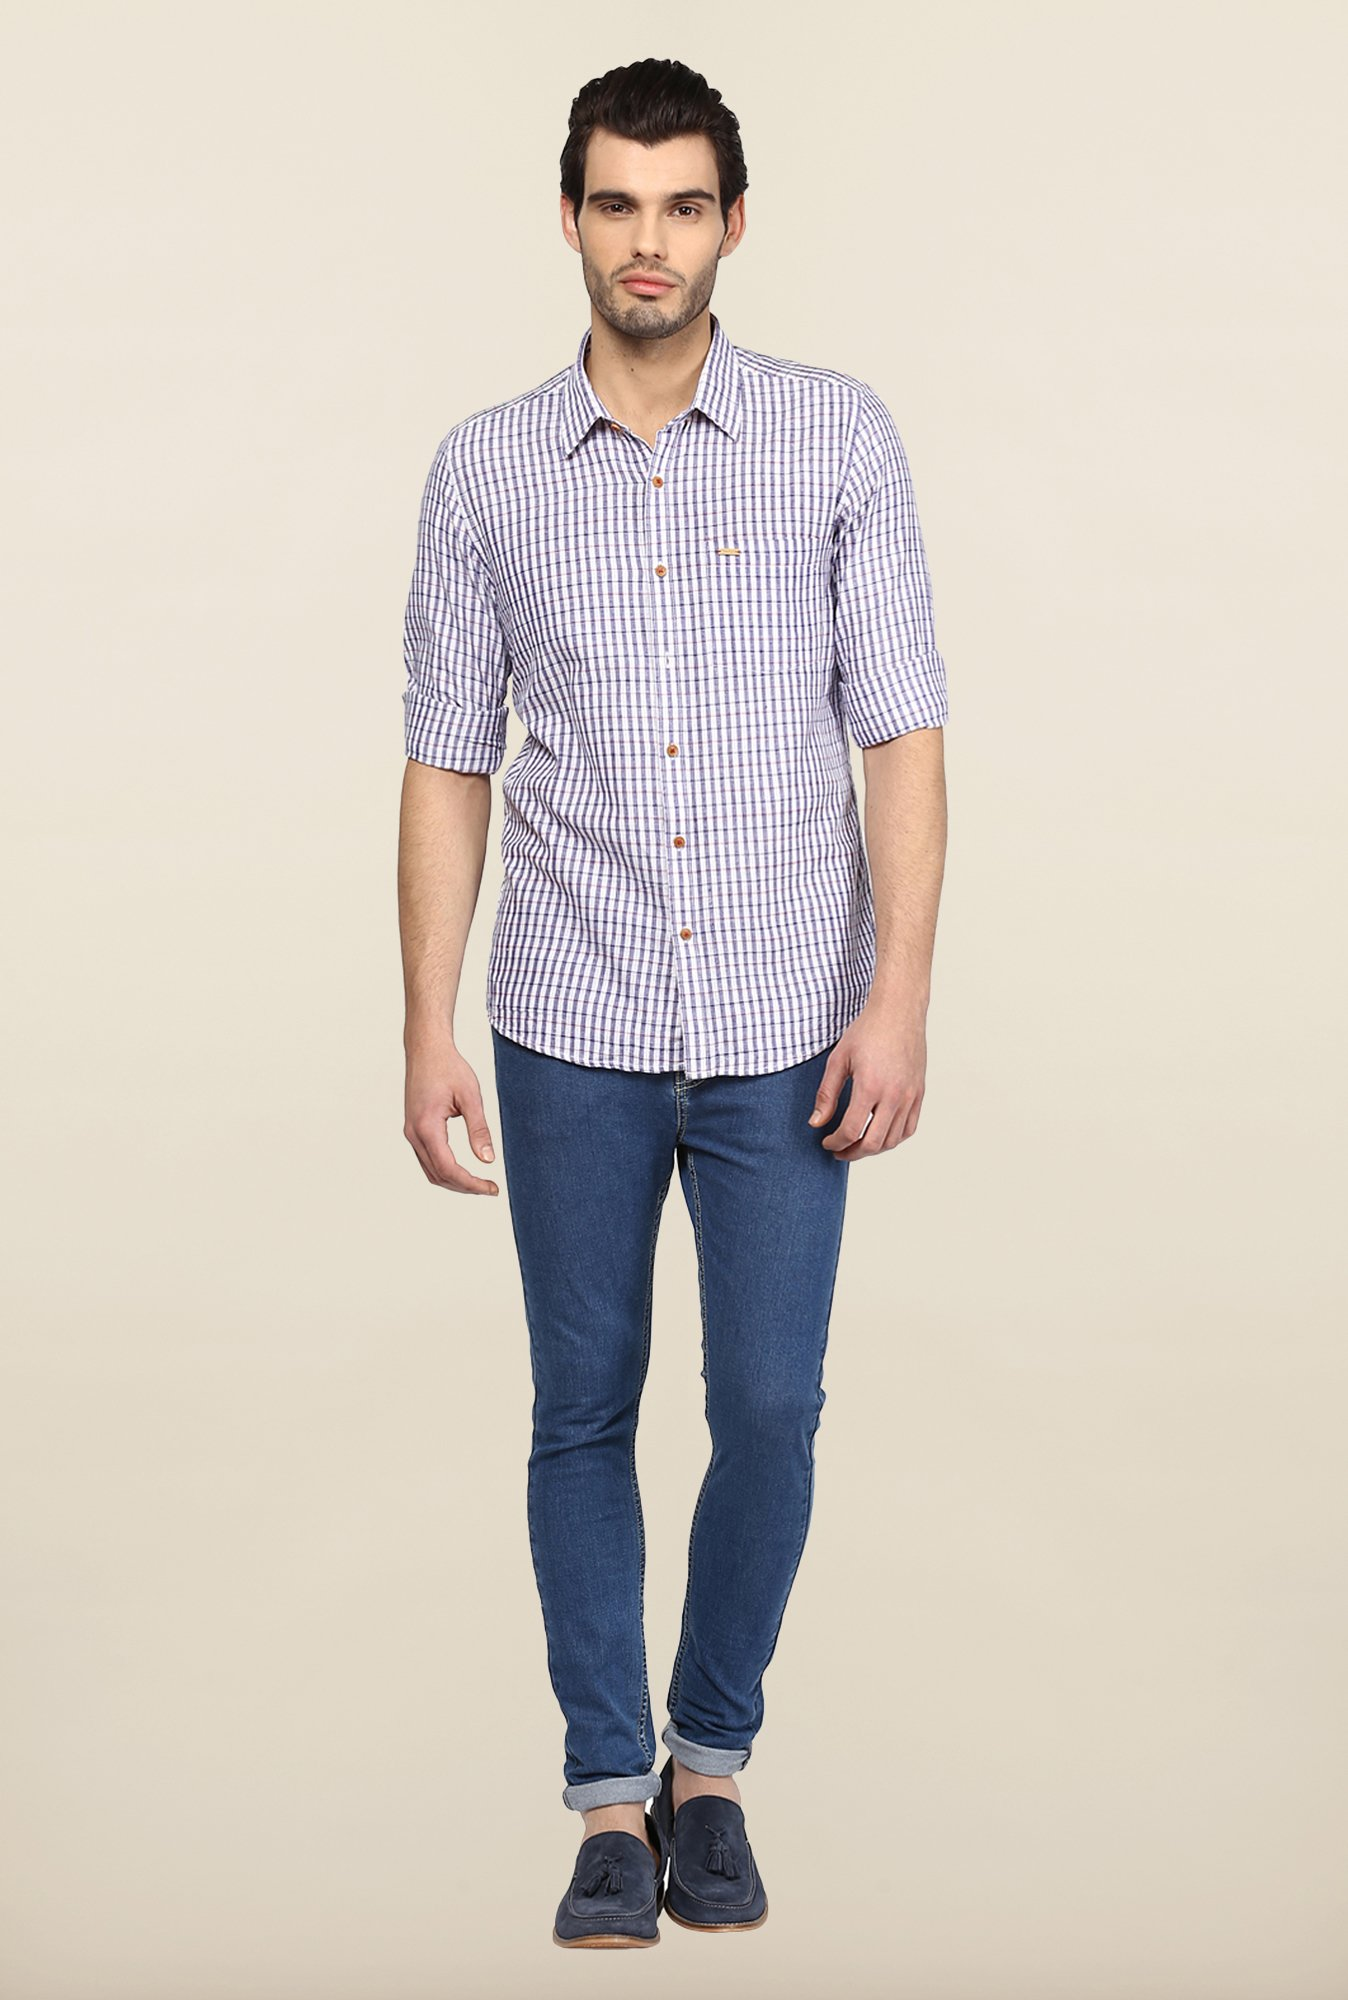 Turtle Purple & White Checks Casual Shirt